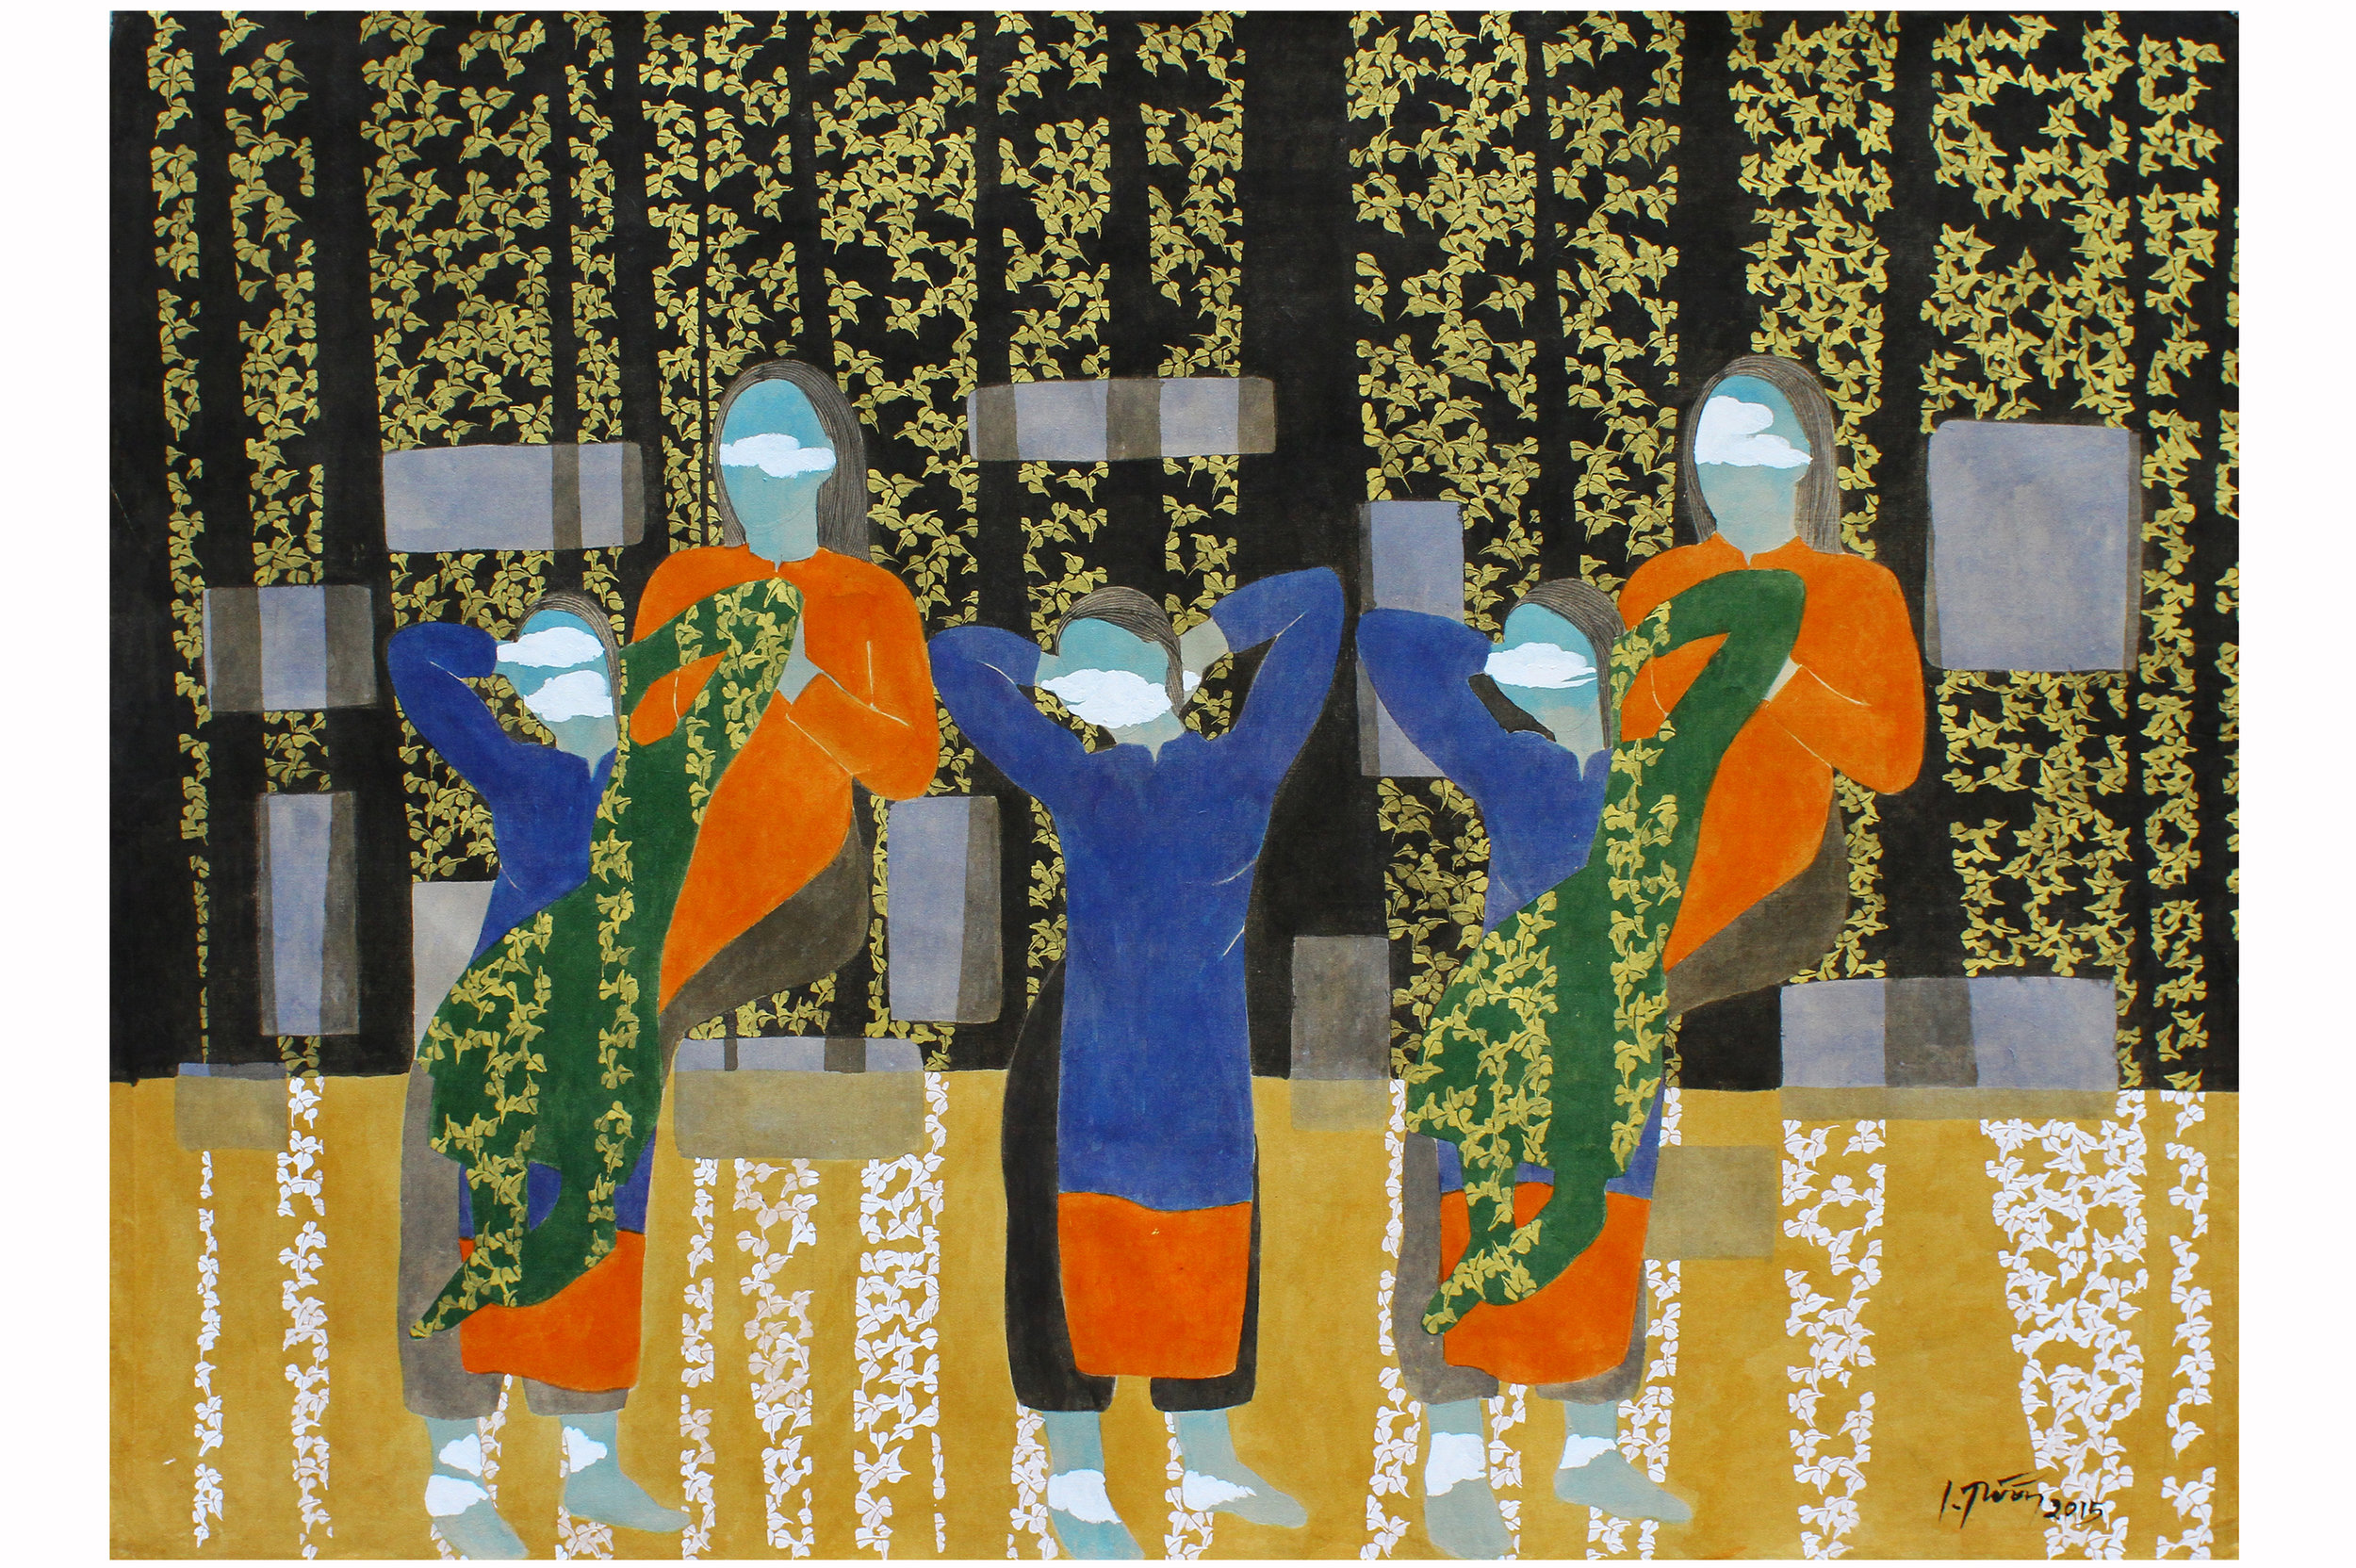 Raquelle Azran Vietnamese Contemporary Fine Art - Dinh Thi Tham Poong - Forest Ecstasies